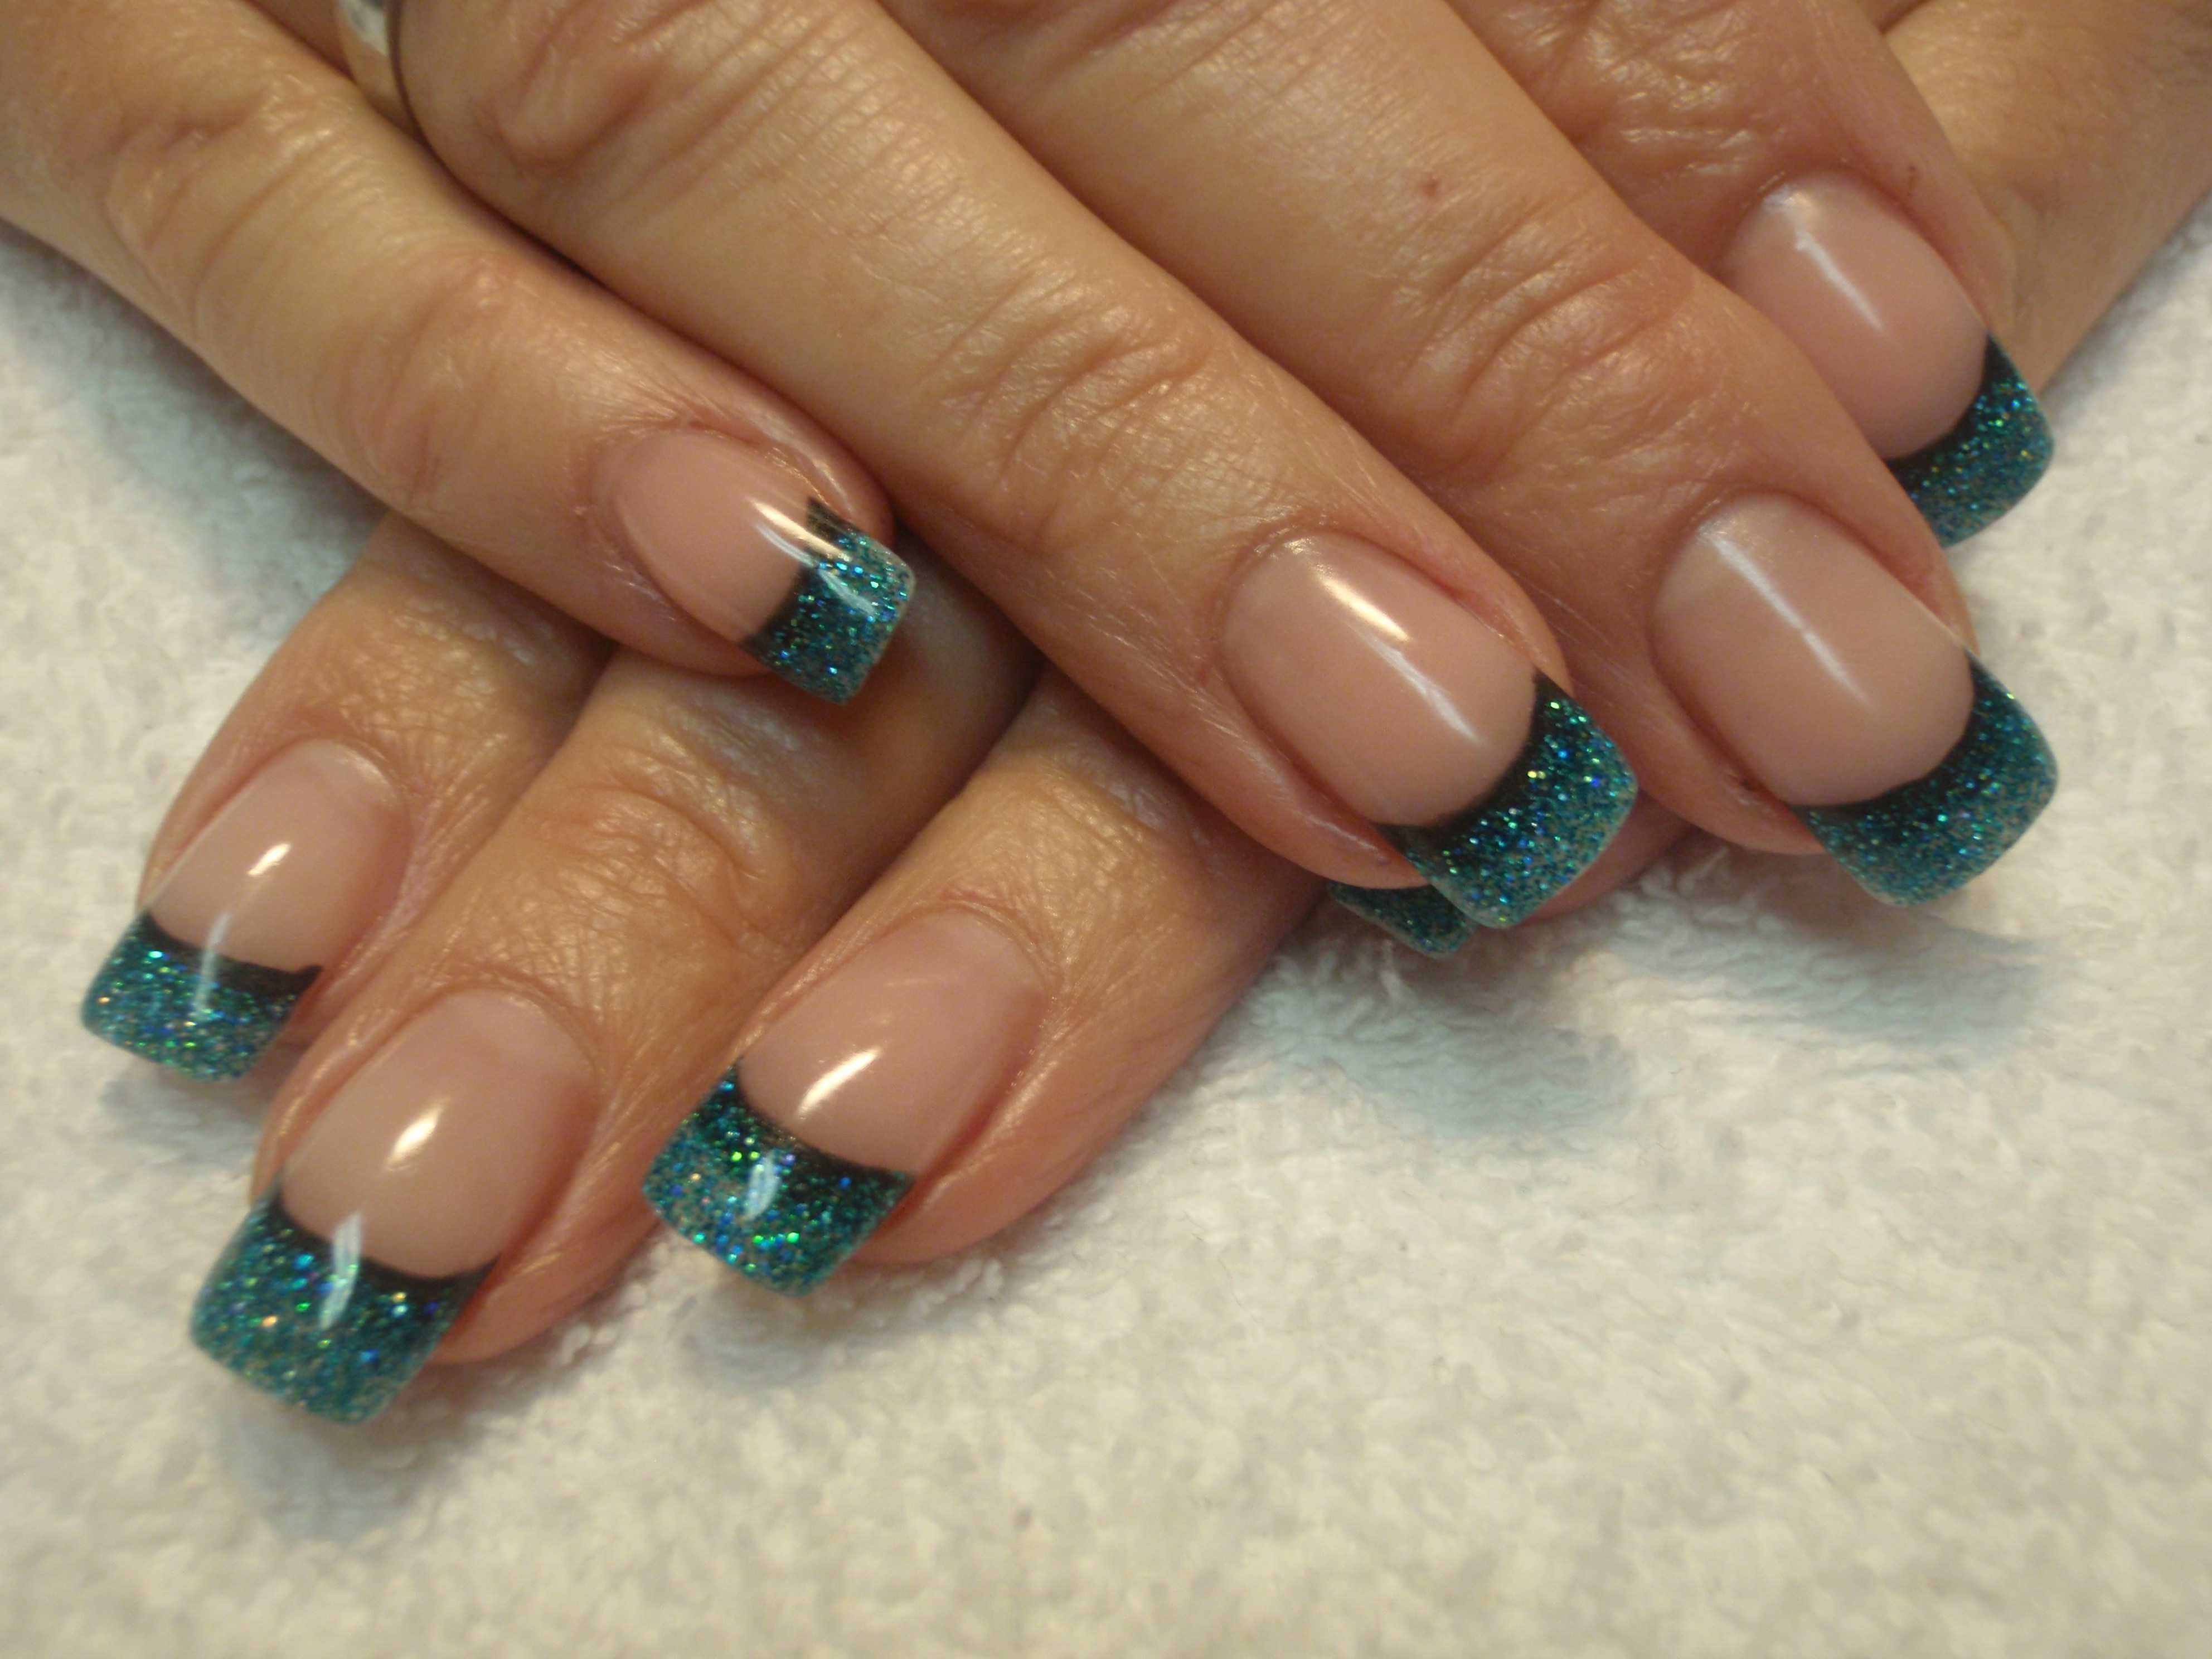 Colored french nail design - Teal French Tip Simple Nail Art Google Search